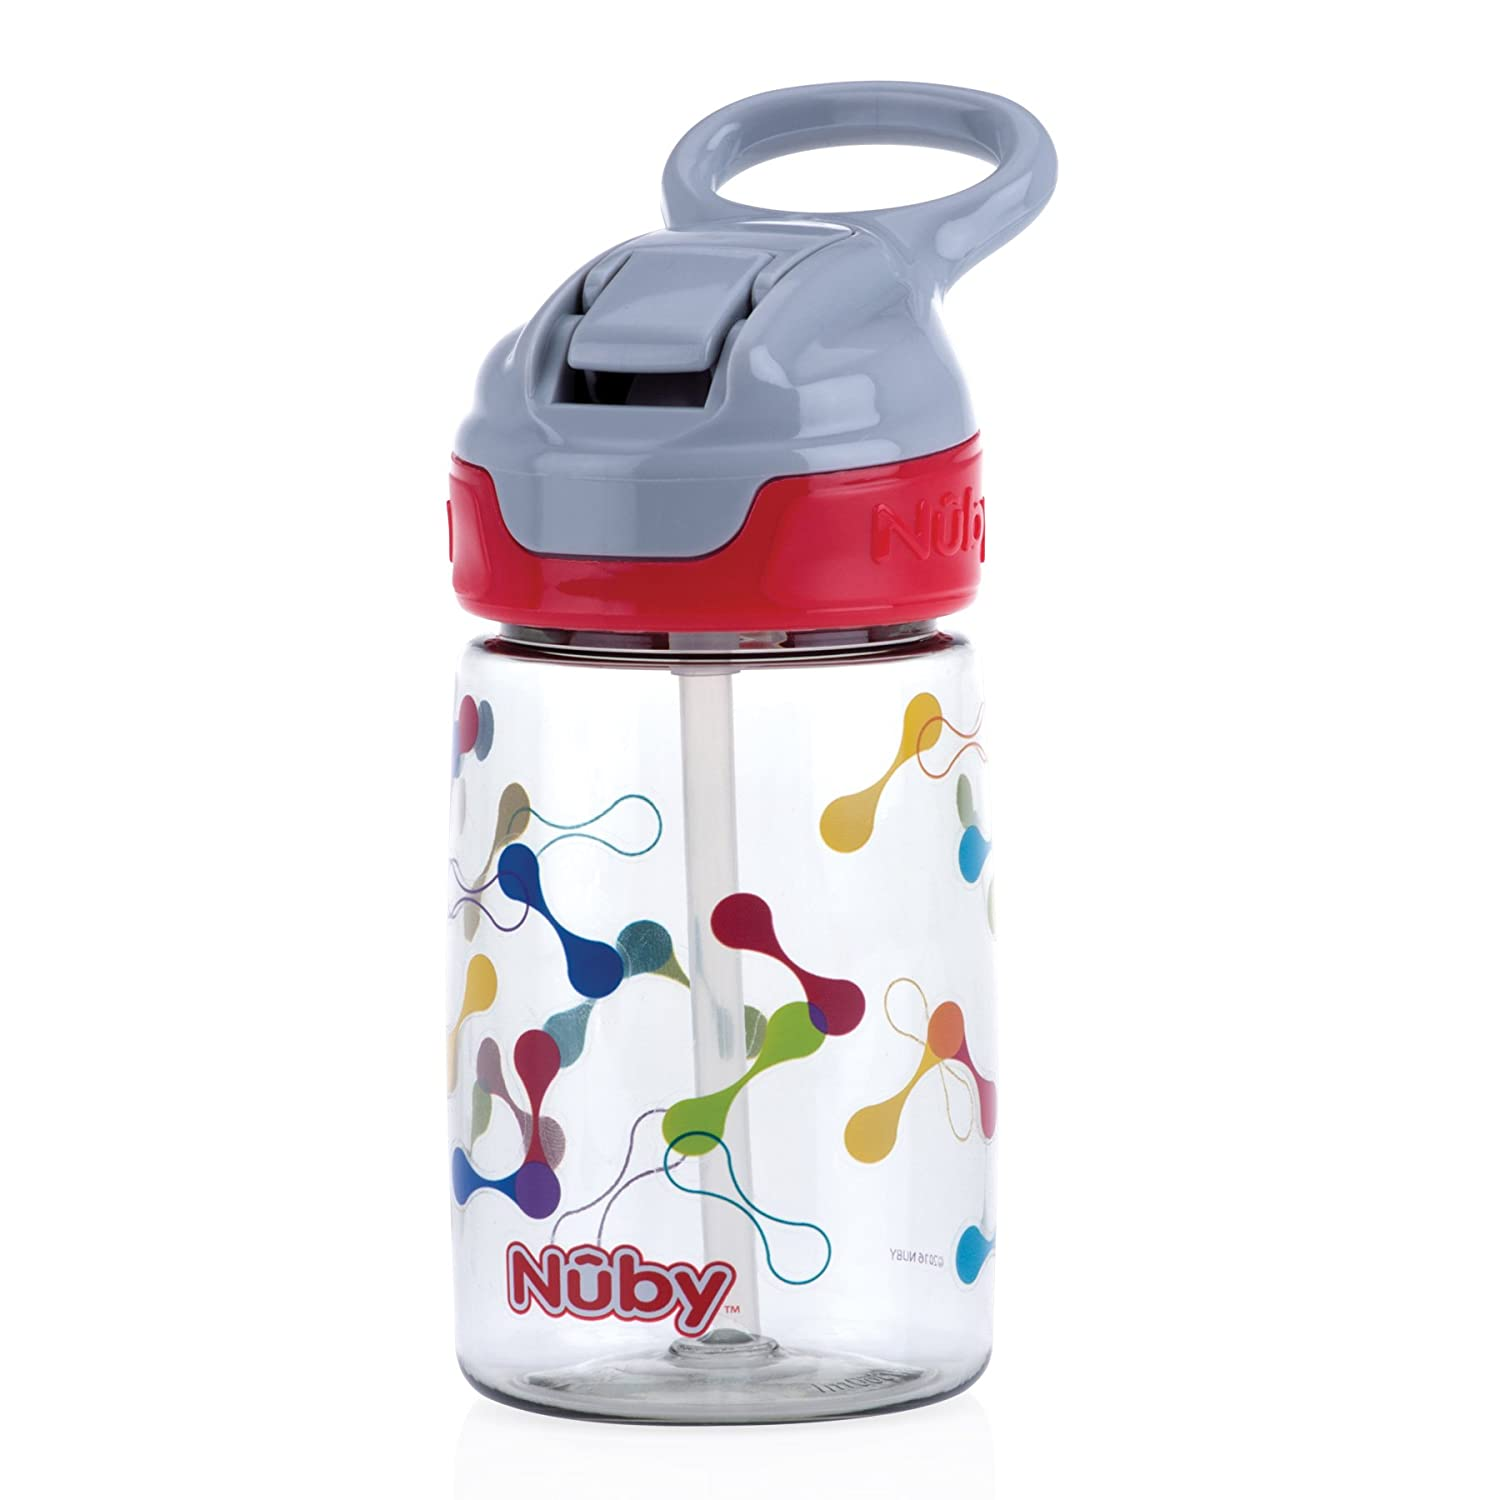 Nuby Thirsty Kids No-Spill Flip-It Reflex 12oz, Red 531298RD